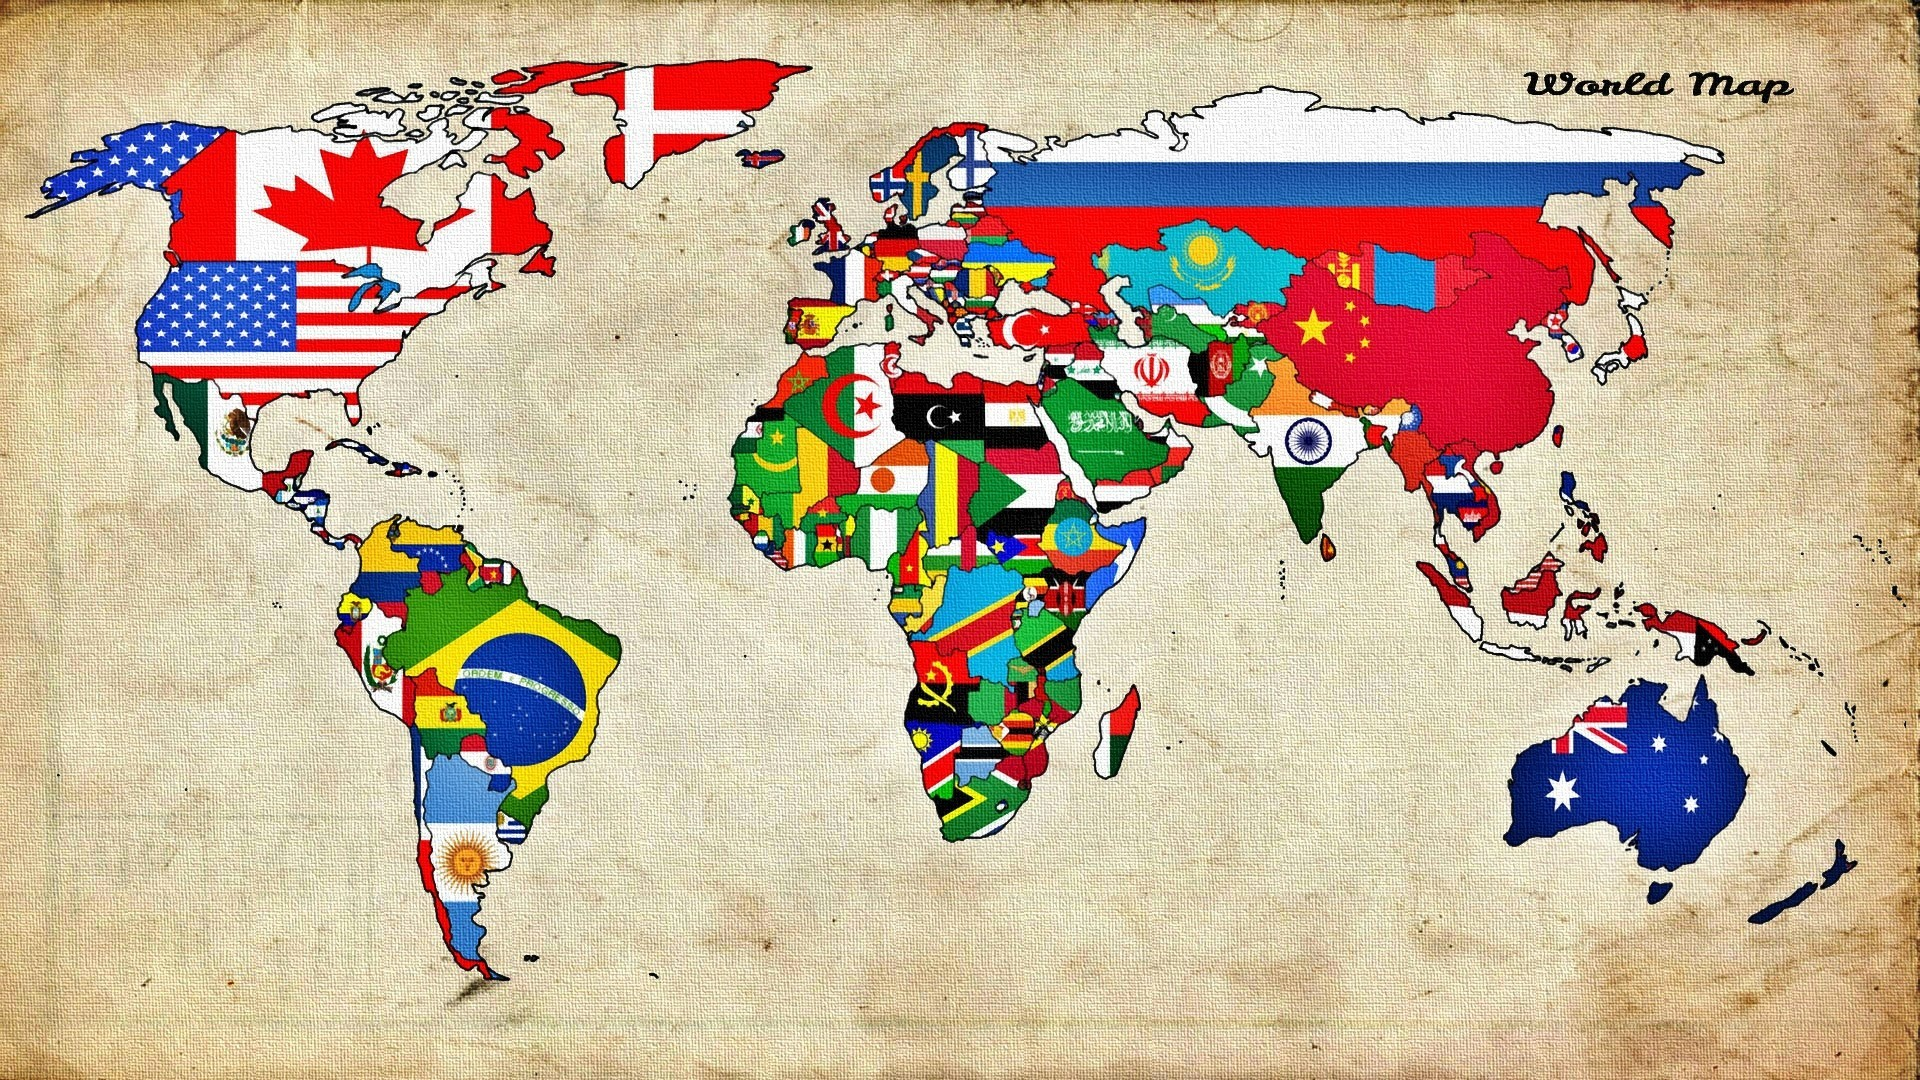 World flags wallpaper 61 images 1920x1080 map world countries flag wallpapers hd desktop and mobile backgrounds gumiabroncs Images